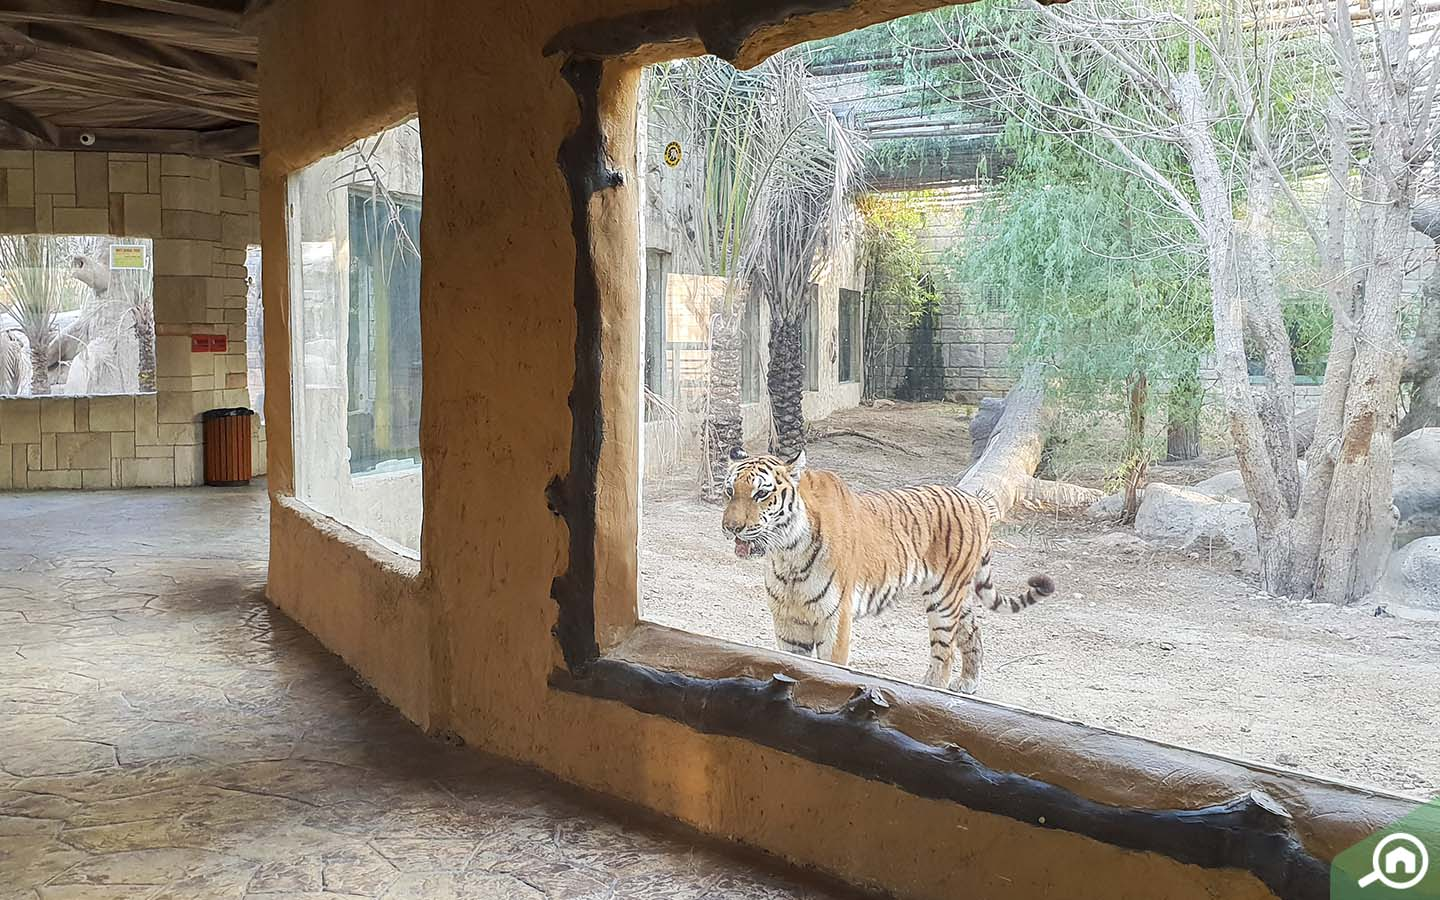 View of tiger in enclosure that can be seen when visiting Emirates Park Zoo, one of the top things to do in Abu Dhabi